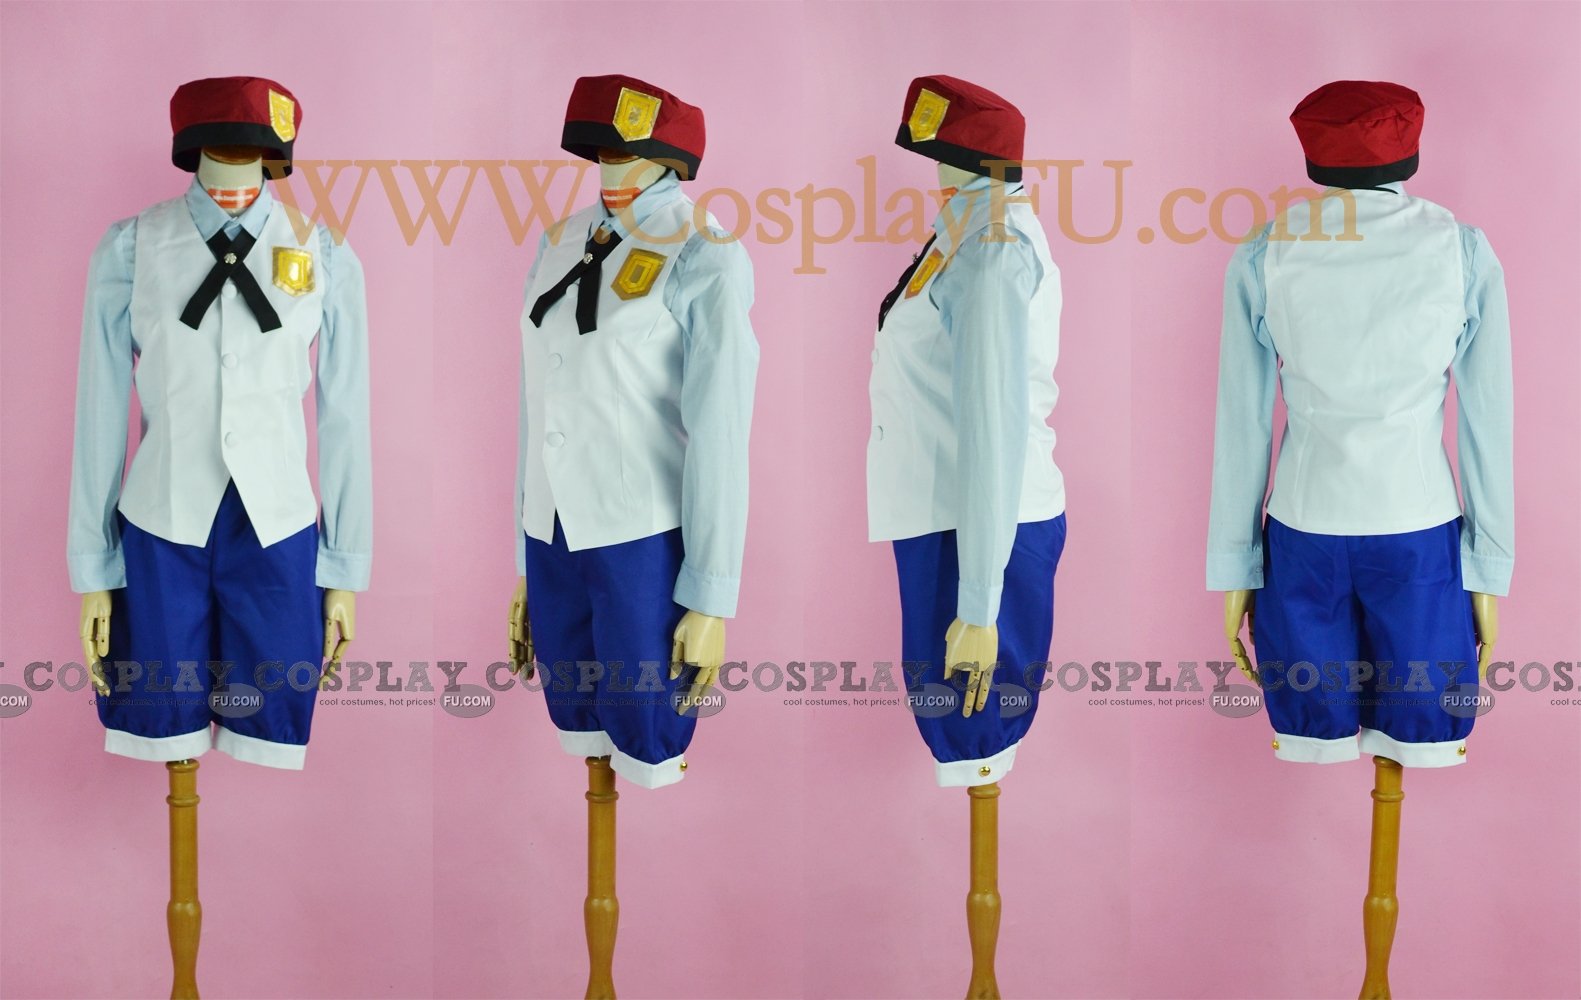 Kugelmugel Cosplay Costume (Austria) from Axis Powers Hetalia